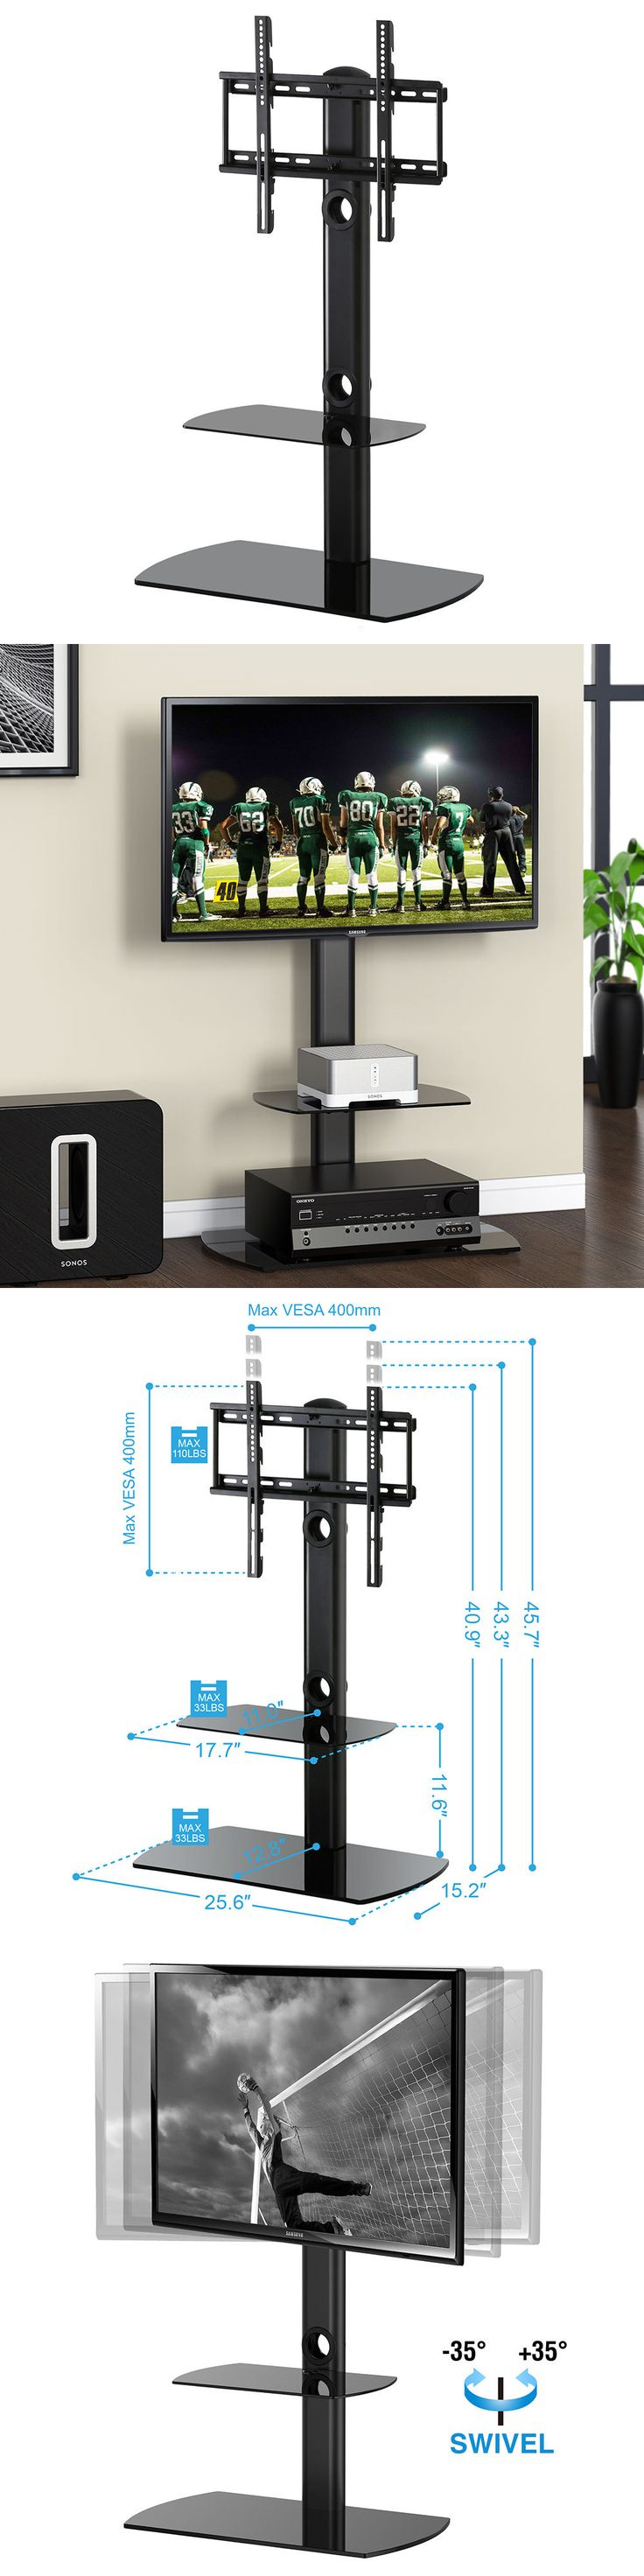 Entertainment Units TV Stands 20488: Fitueyes Tv Universal Stand Shelf With Mount Brackets Fits 32-50 Plasma Lcd Tvs -> BUY IT NOW ONLY: $78.84 on eBay!